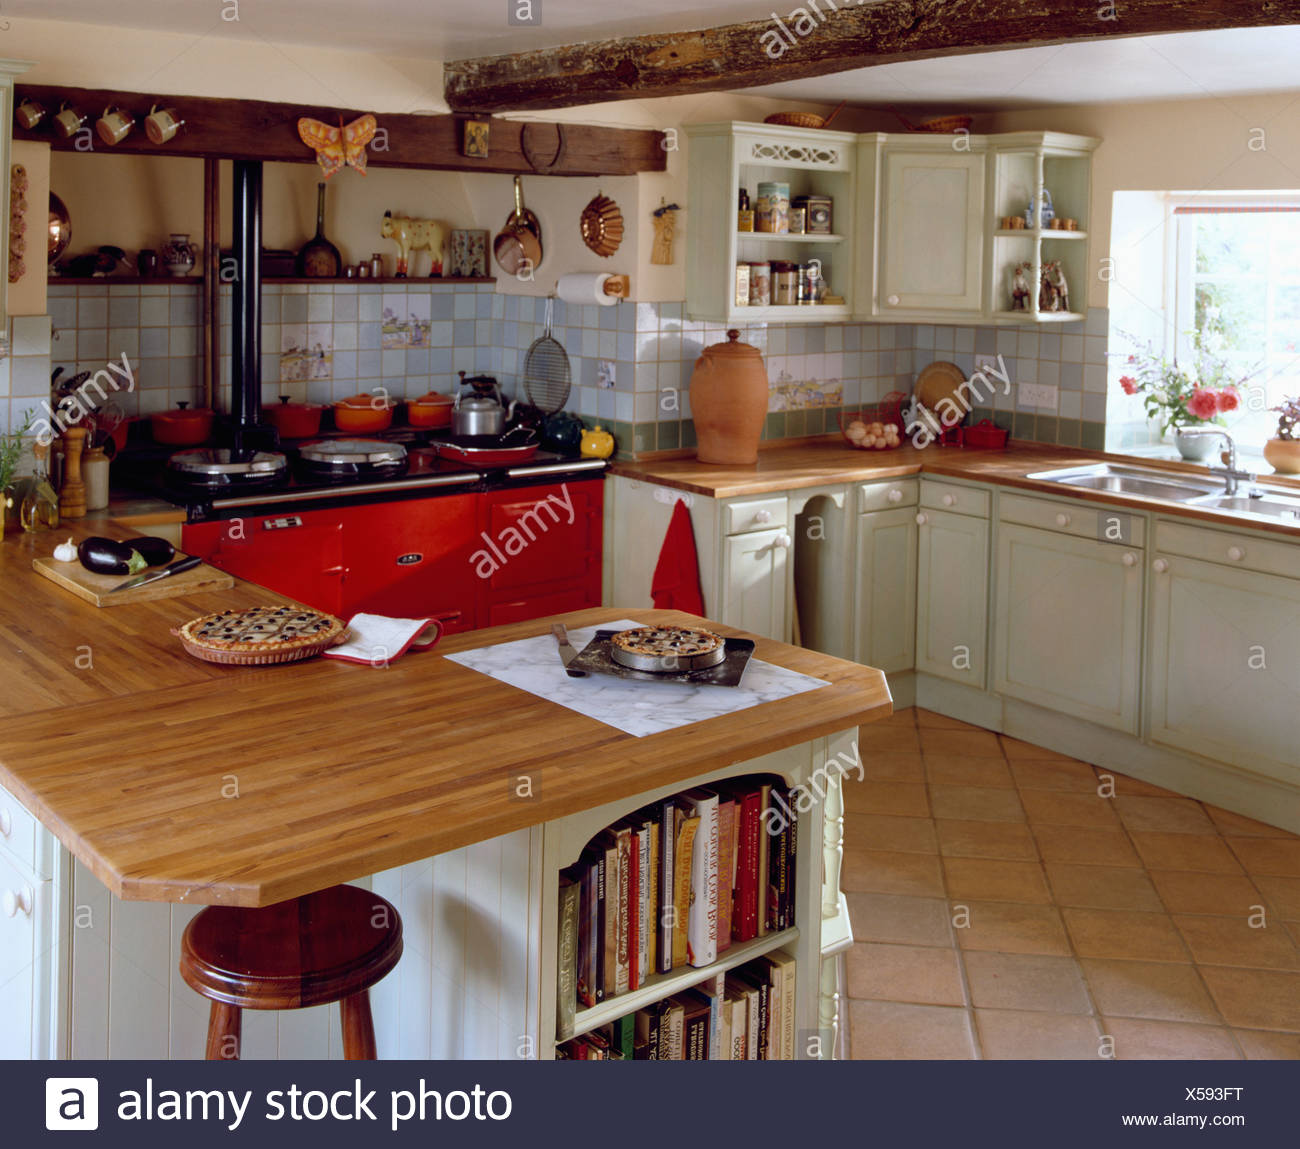 Island Unit With Wooden Worktop In Traditional Country Kitchen With Red Aga  Double Oven And Terracotta Floor Tiles